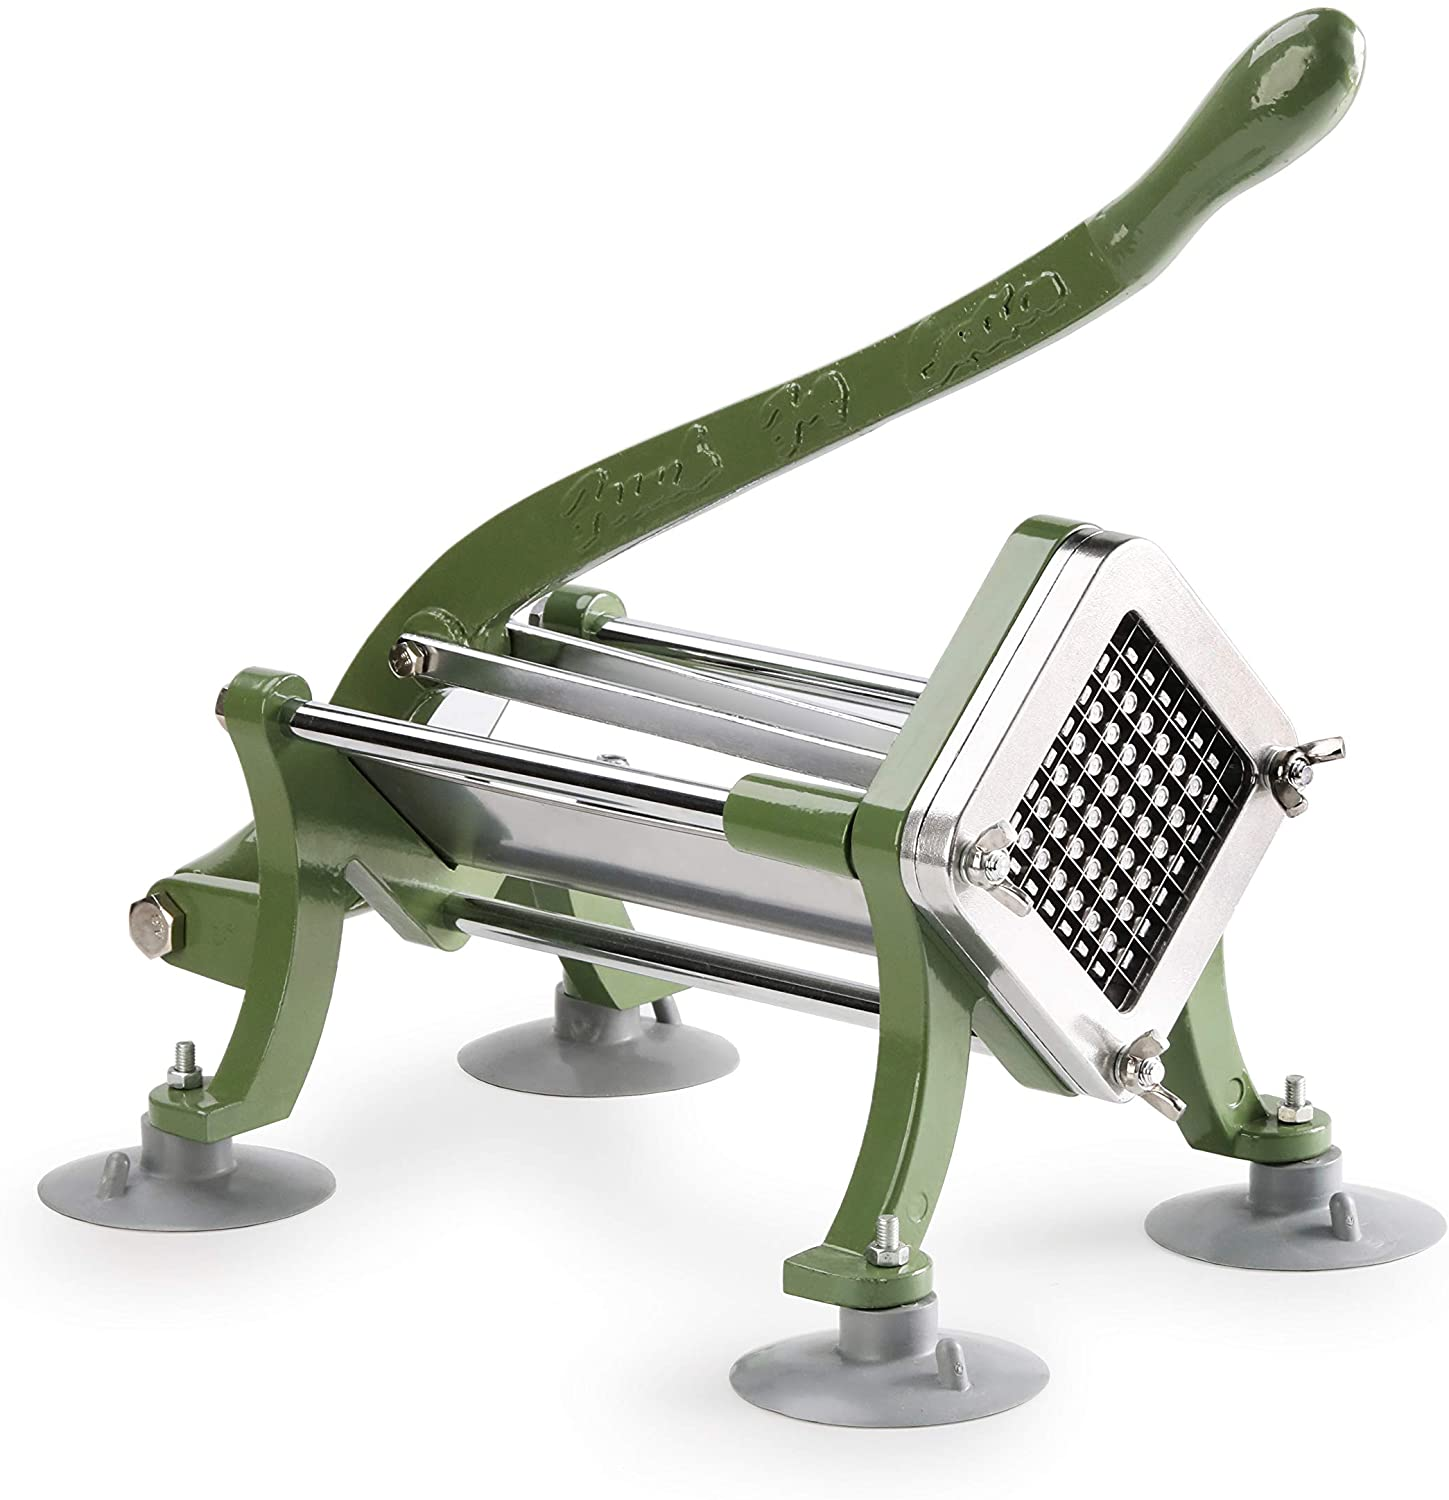 """New Star Foodservice 42306 Commercial Grade French Fry Cutter with Suction Feet, 3/8"""", Green"""